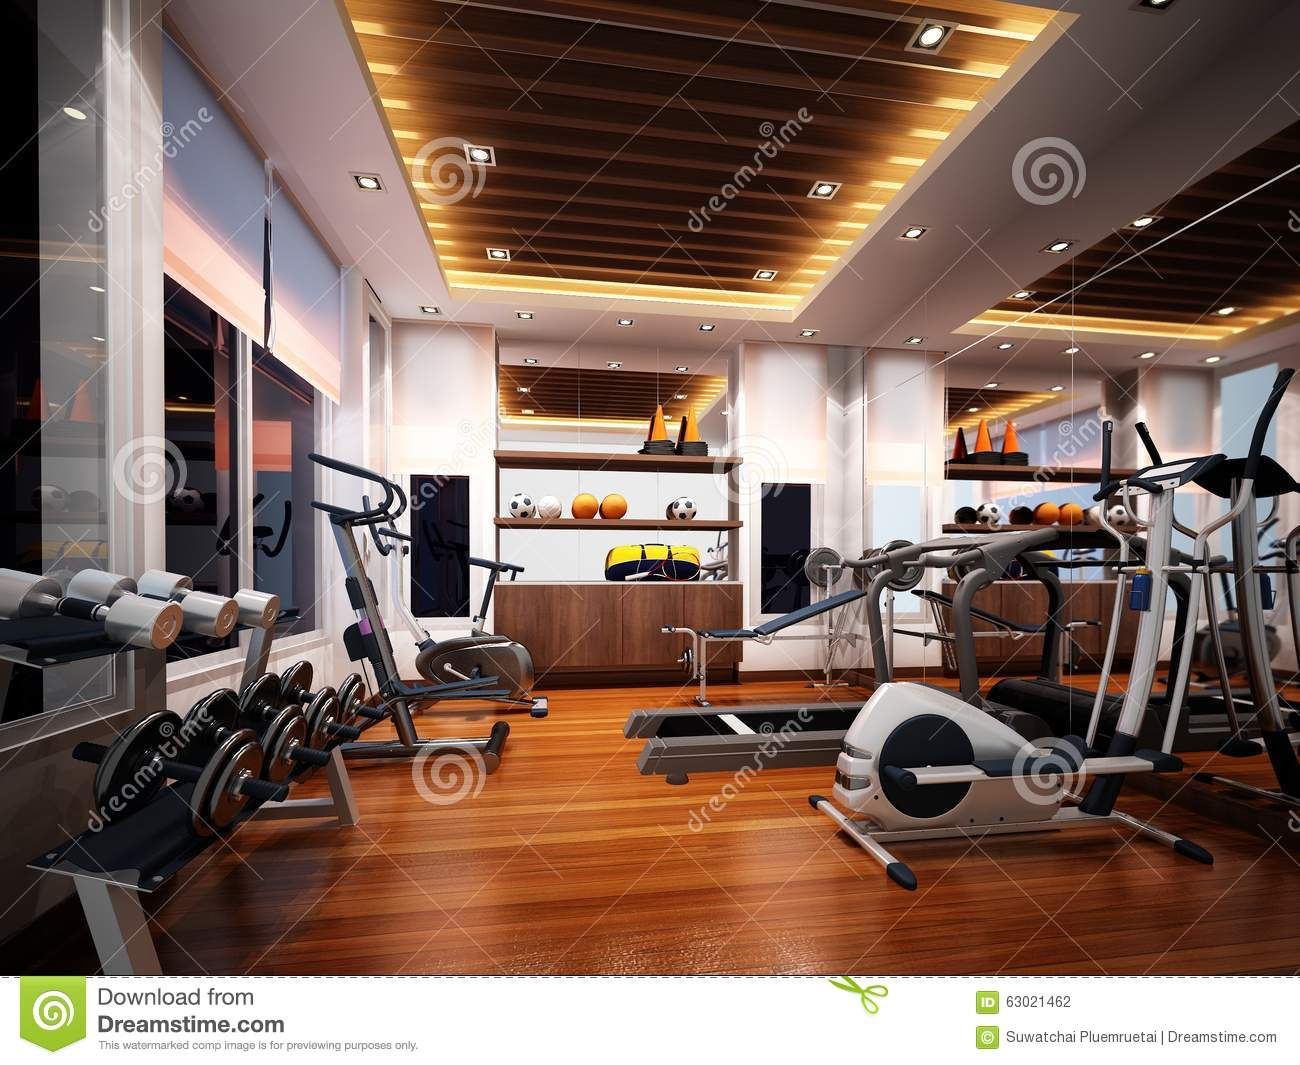 D render of interior fitness room stock illustration